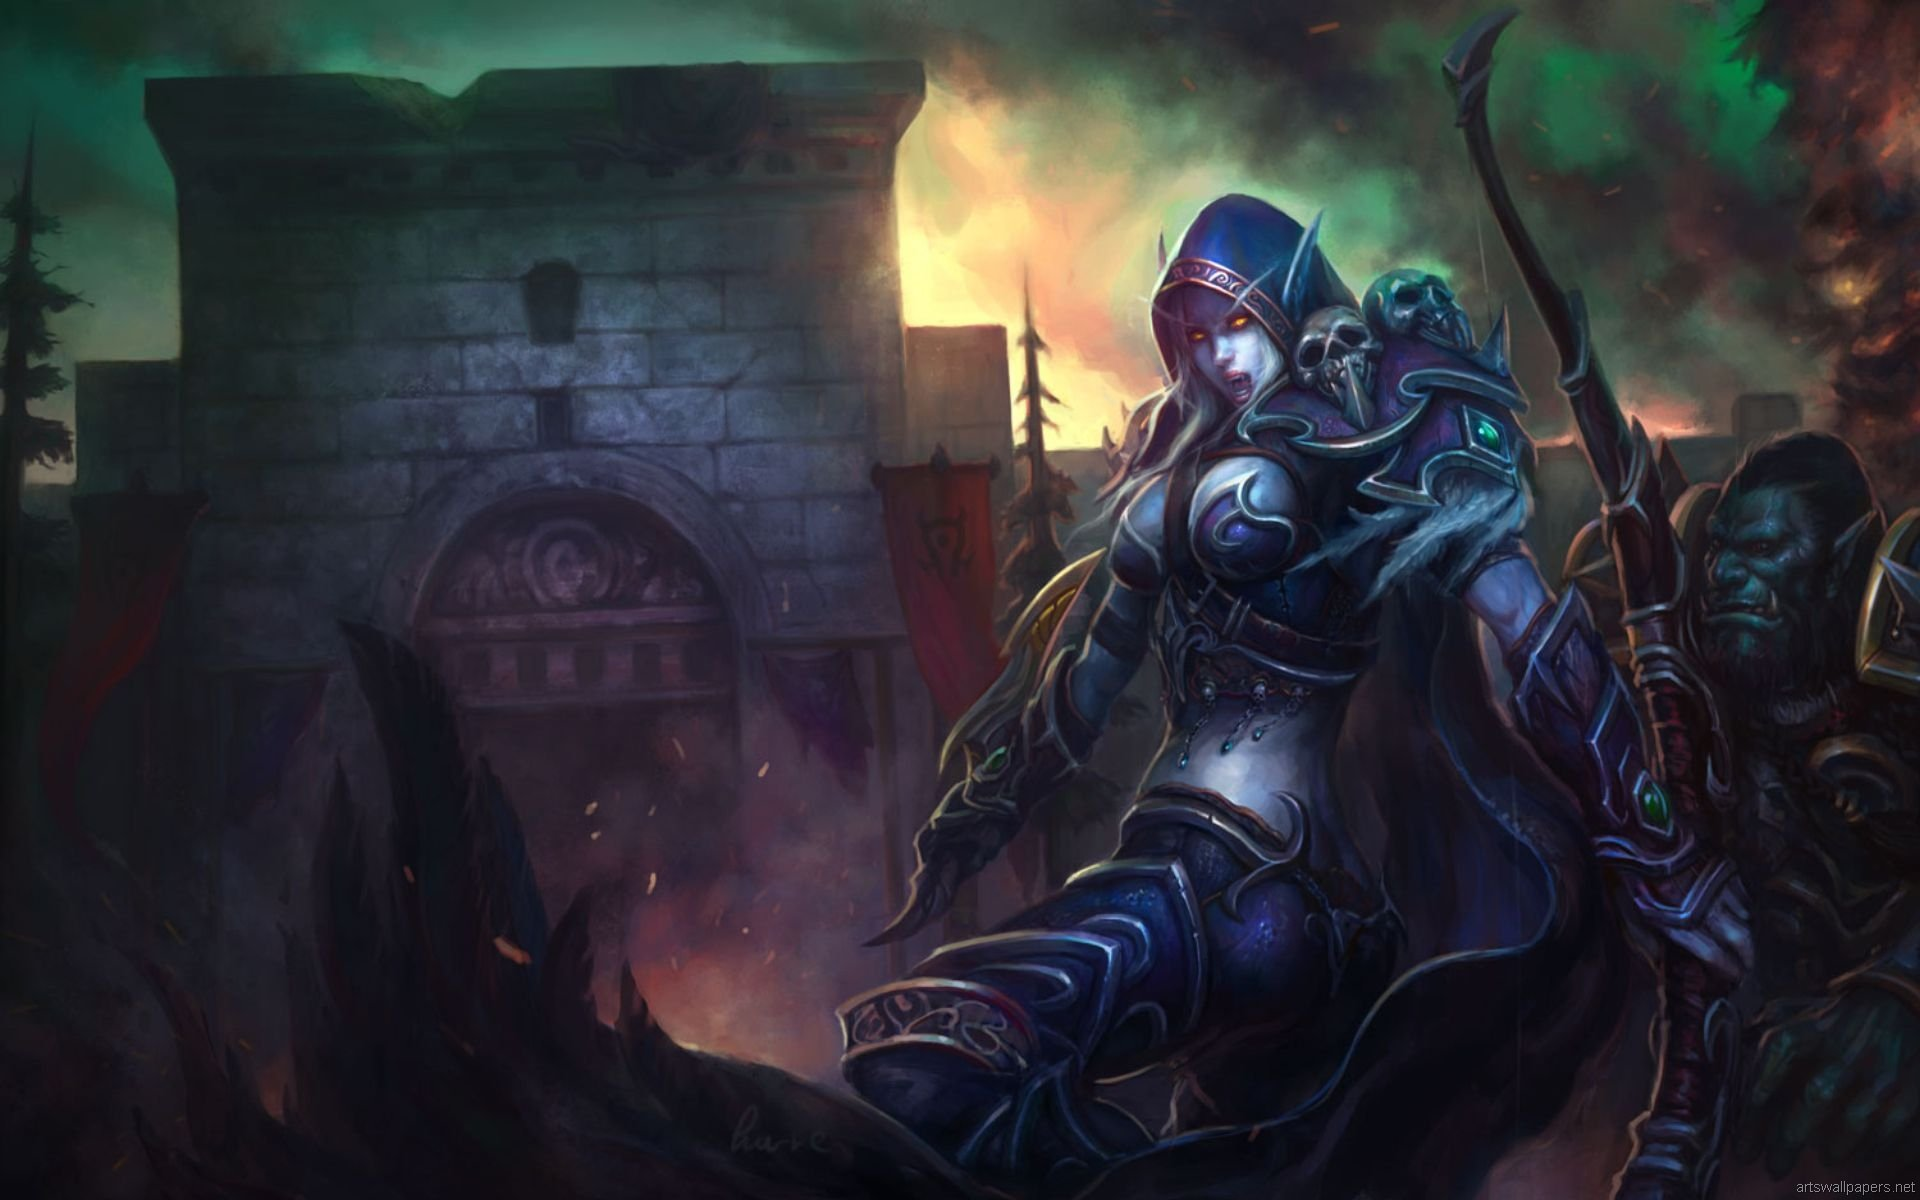 world of warcraft background wallpapers Desktop Backgrounds for 1920x1200